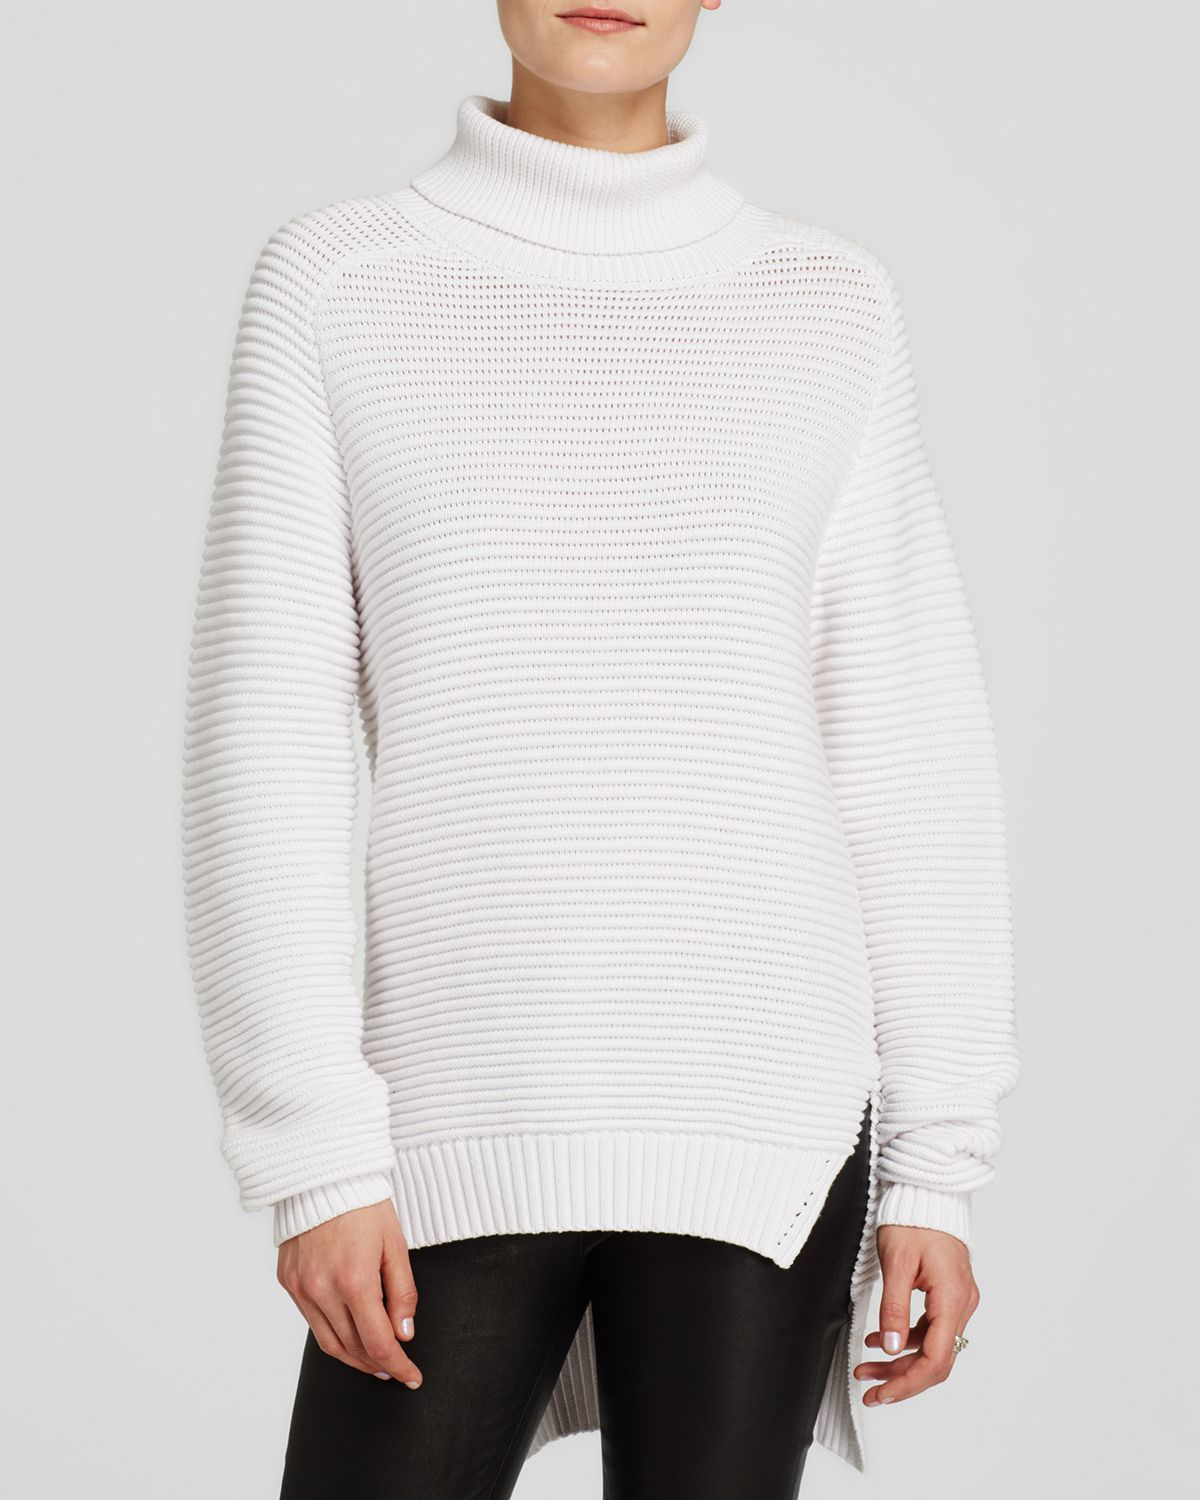 Our Mens Wool Turtleneck Sweater, add a classic look to a man wardrobe. This Fisherman Sweater has an Aran Honeycomb design and available in 4 color including traditional Aran White Wool.